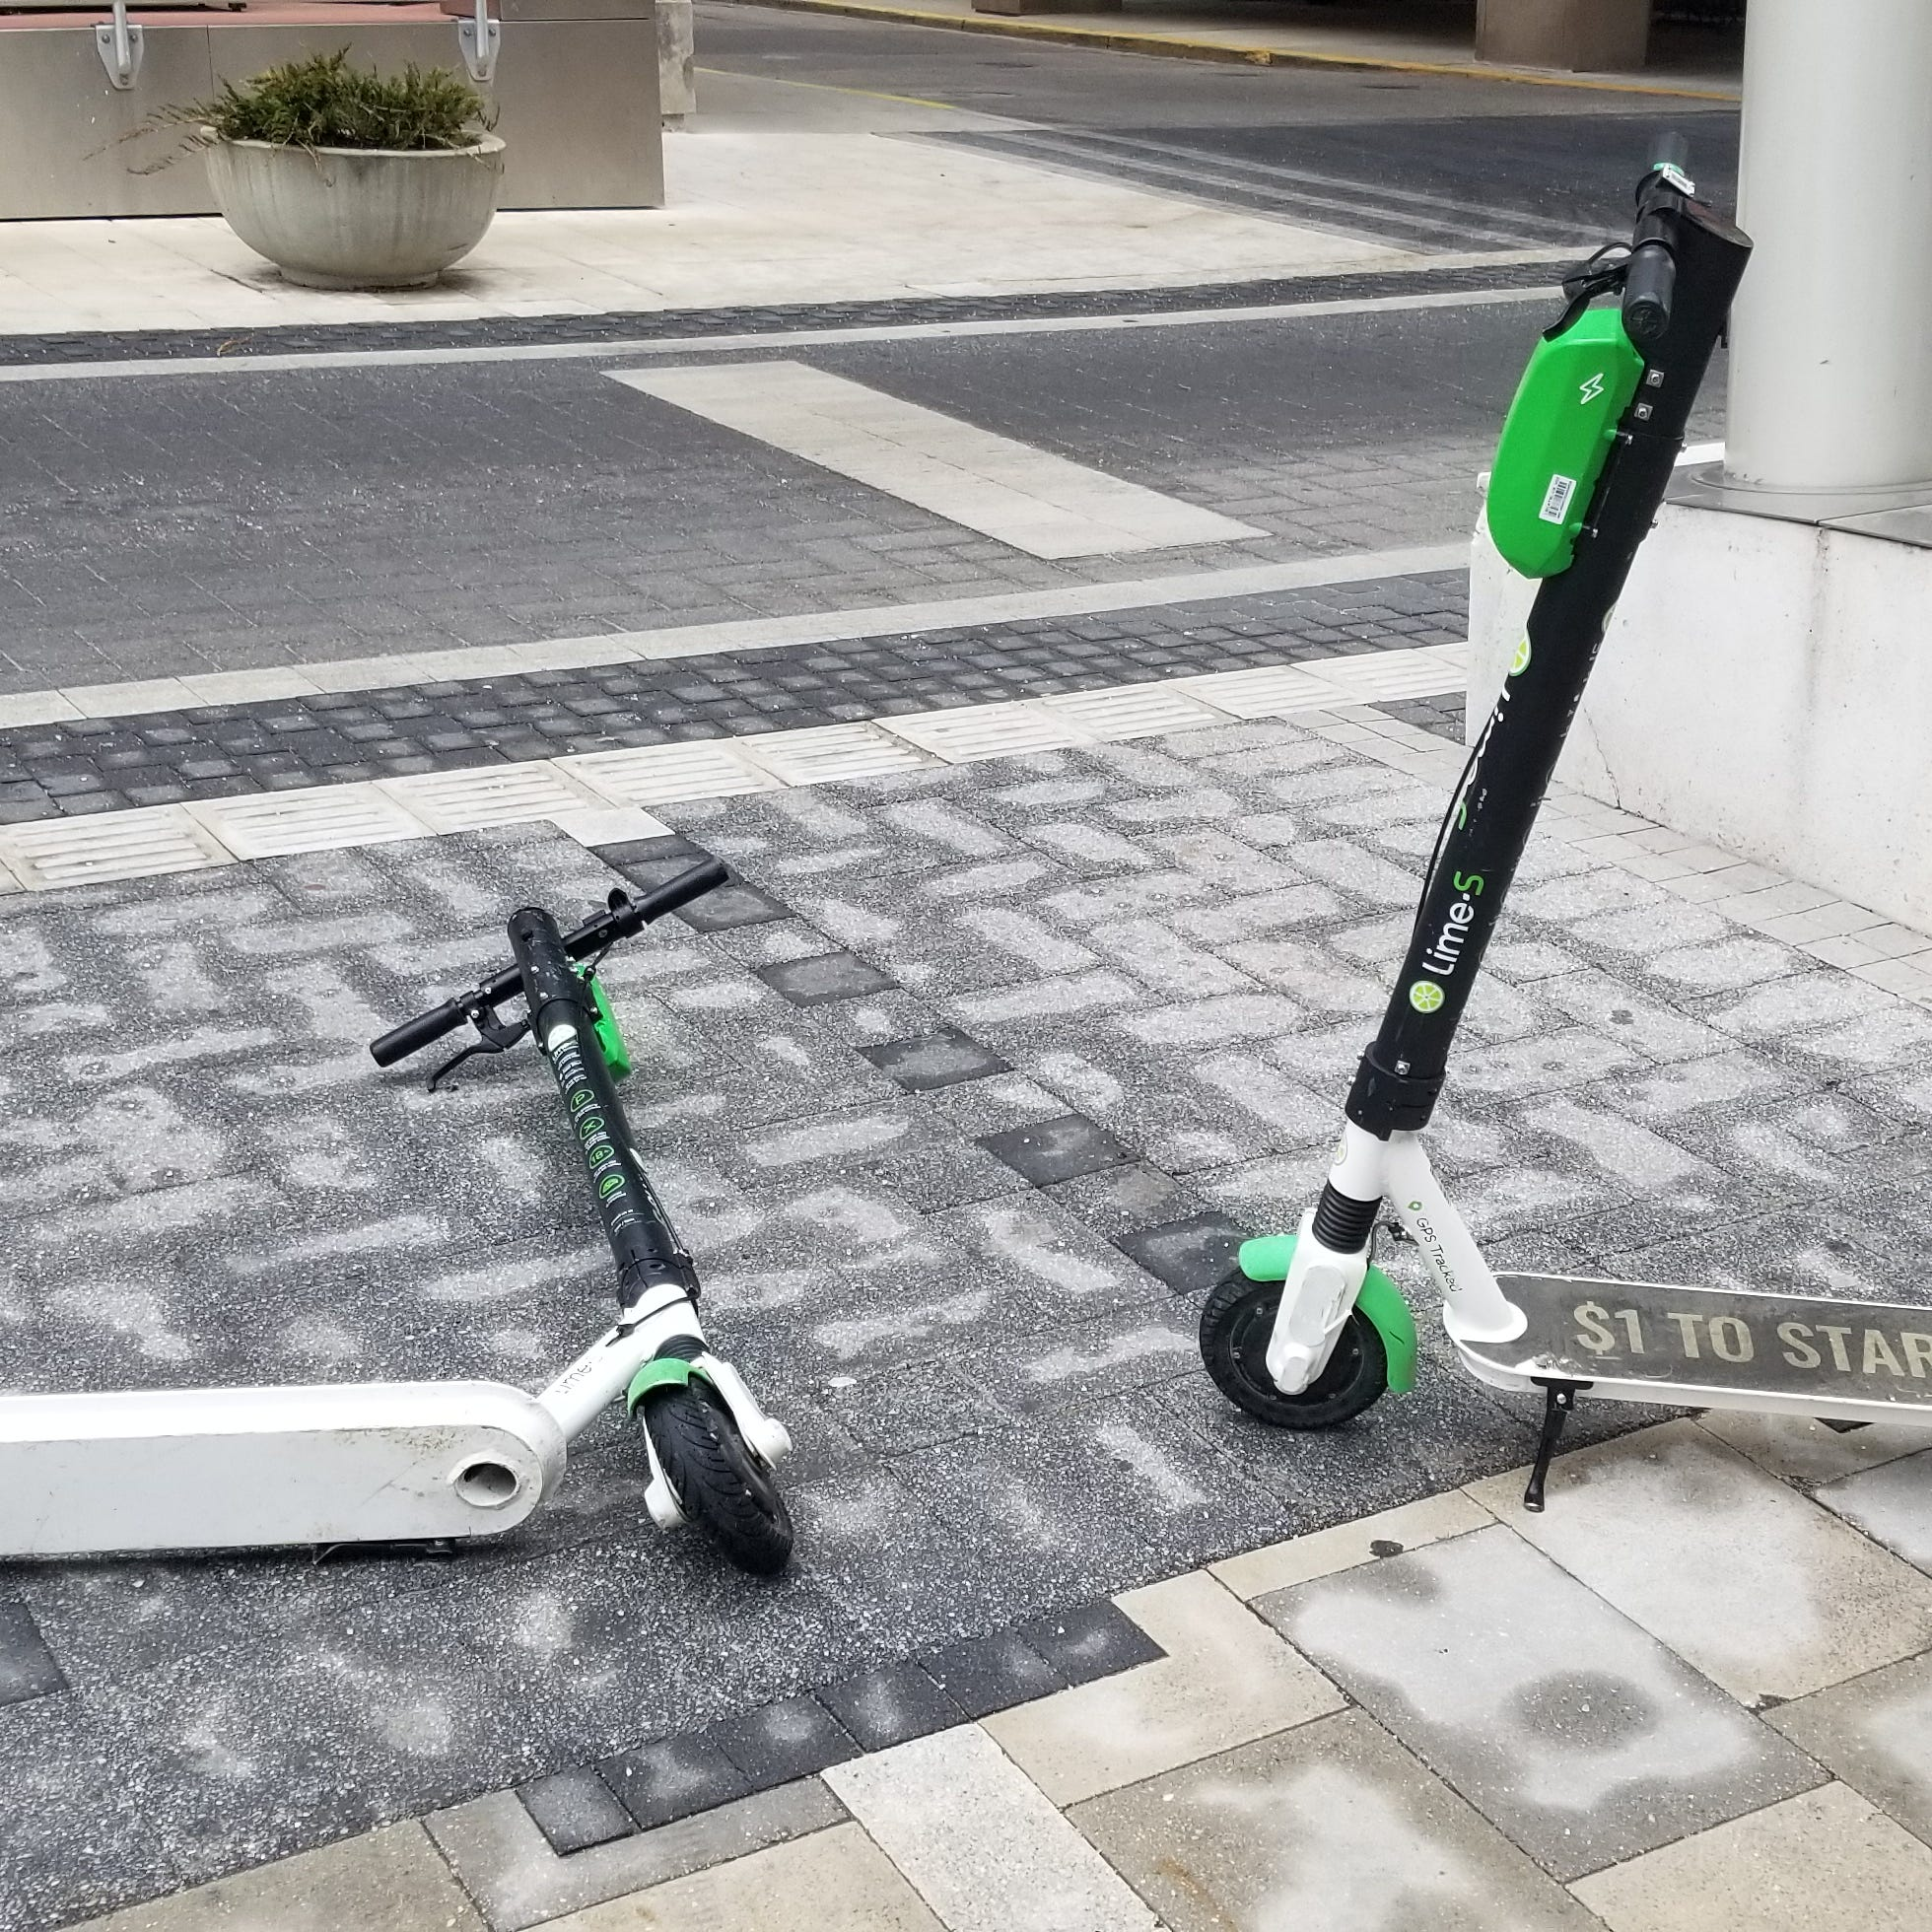 More than 60 percent of survey respondents had been involved in a crash or near miss with an electric scooter